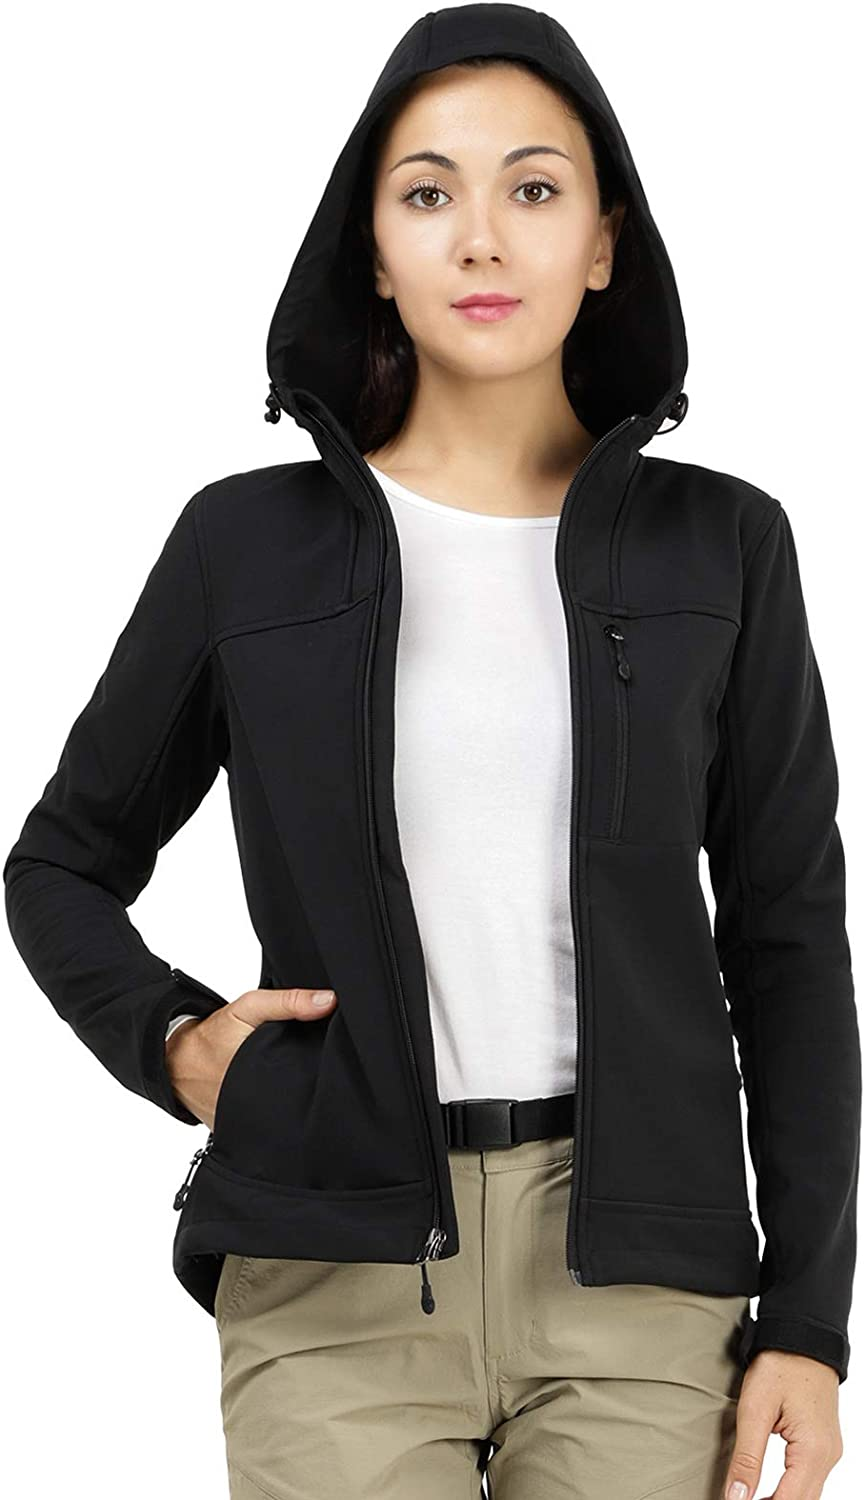 MIER Womens Hooded Softshell Jacket Tactical Jacket with Fleece Lined for Hiking Travel Work Casual Black Water Resistant